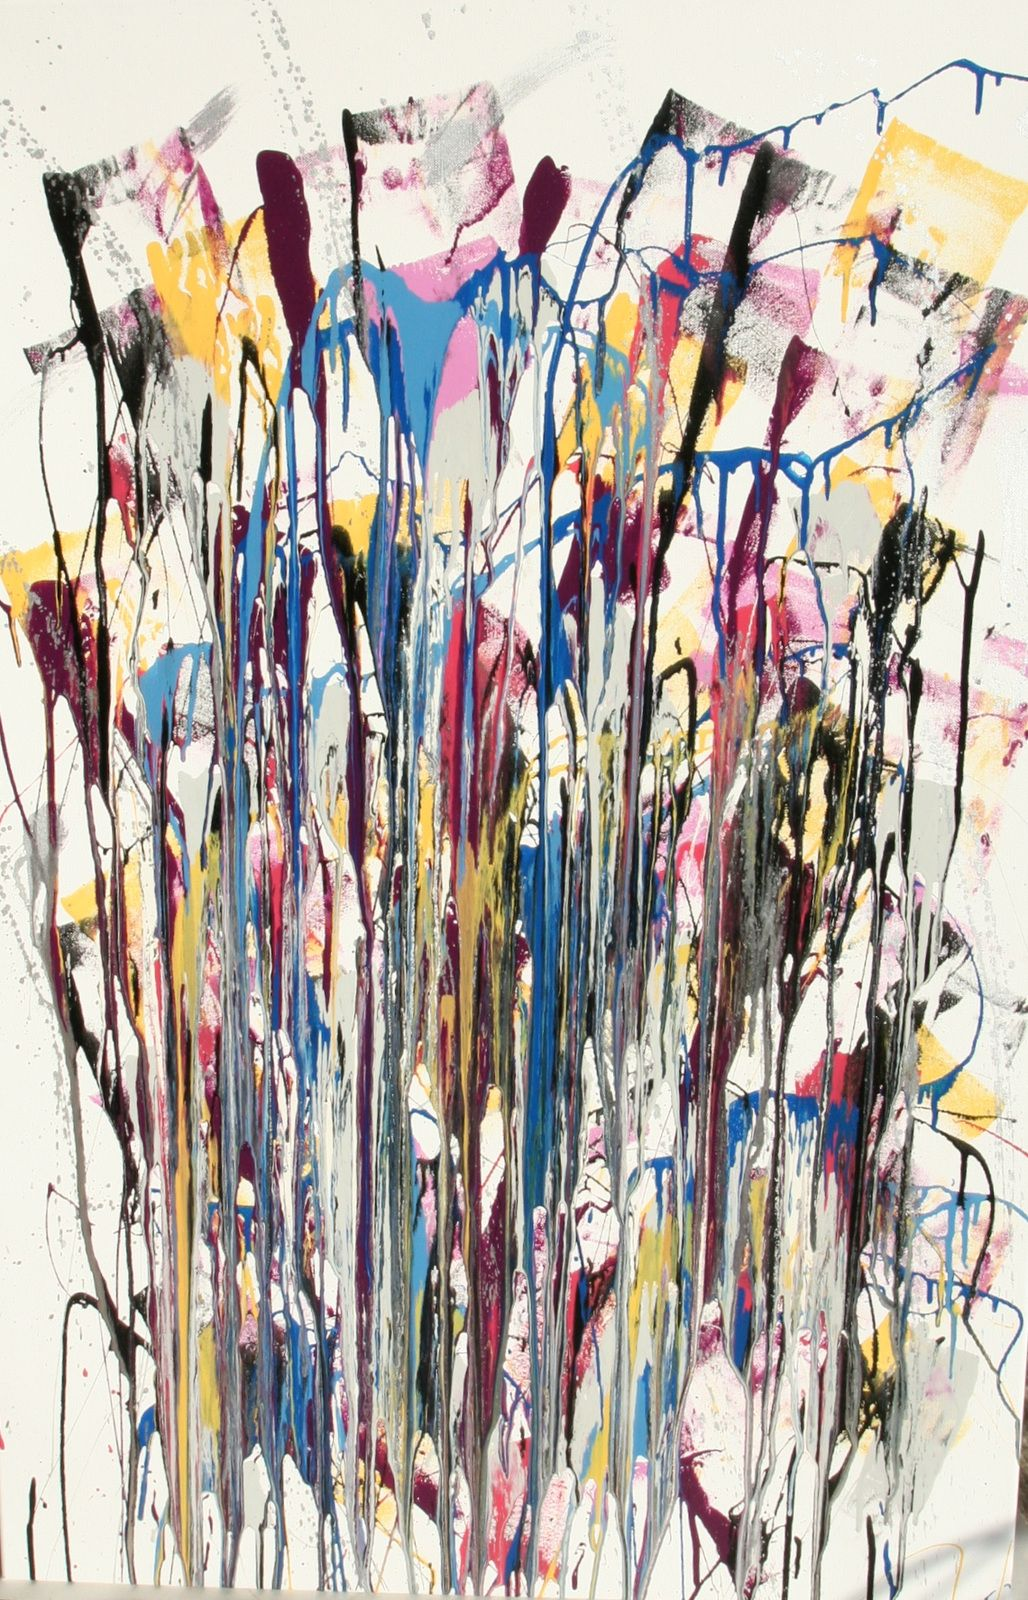 Winter color in beef Jackson Pollock action painting 2011